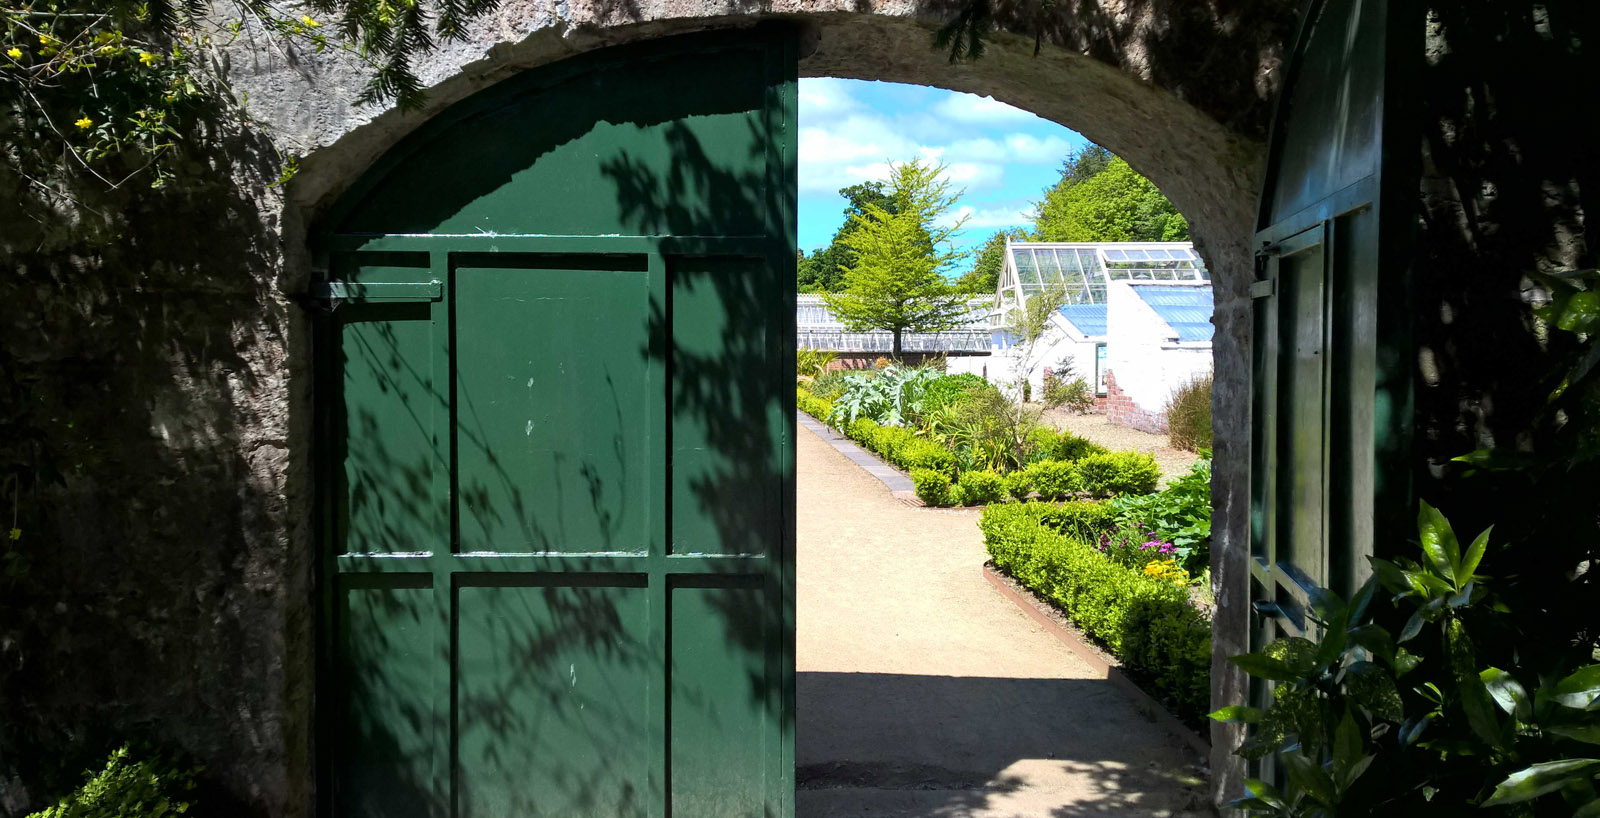 The Fota Frameyard seen beyond a half open gate